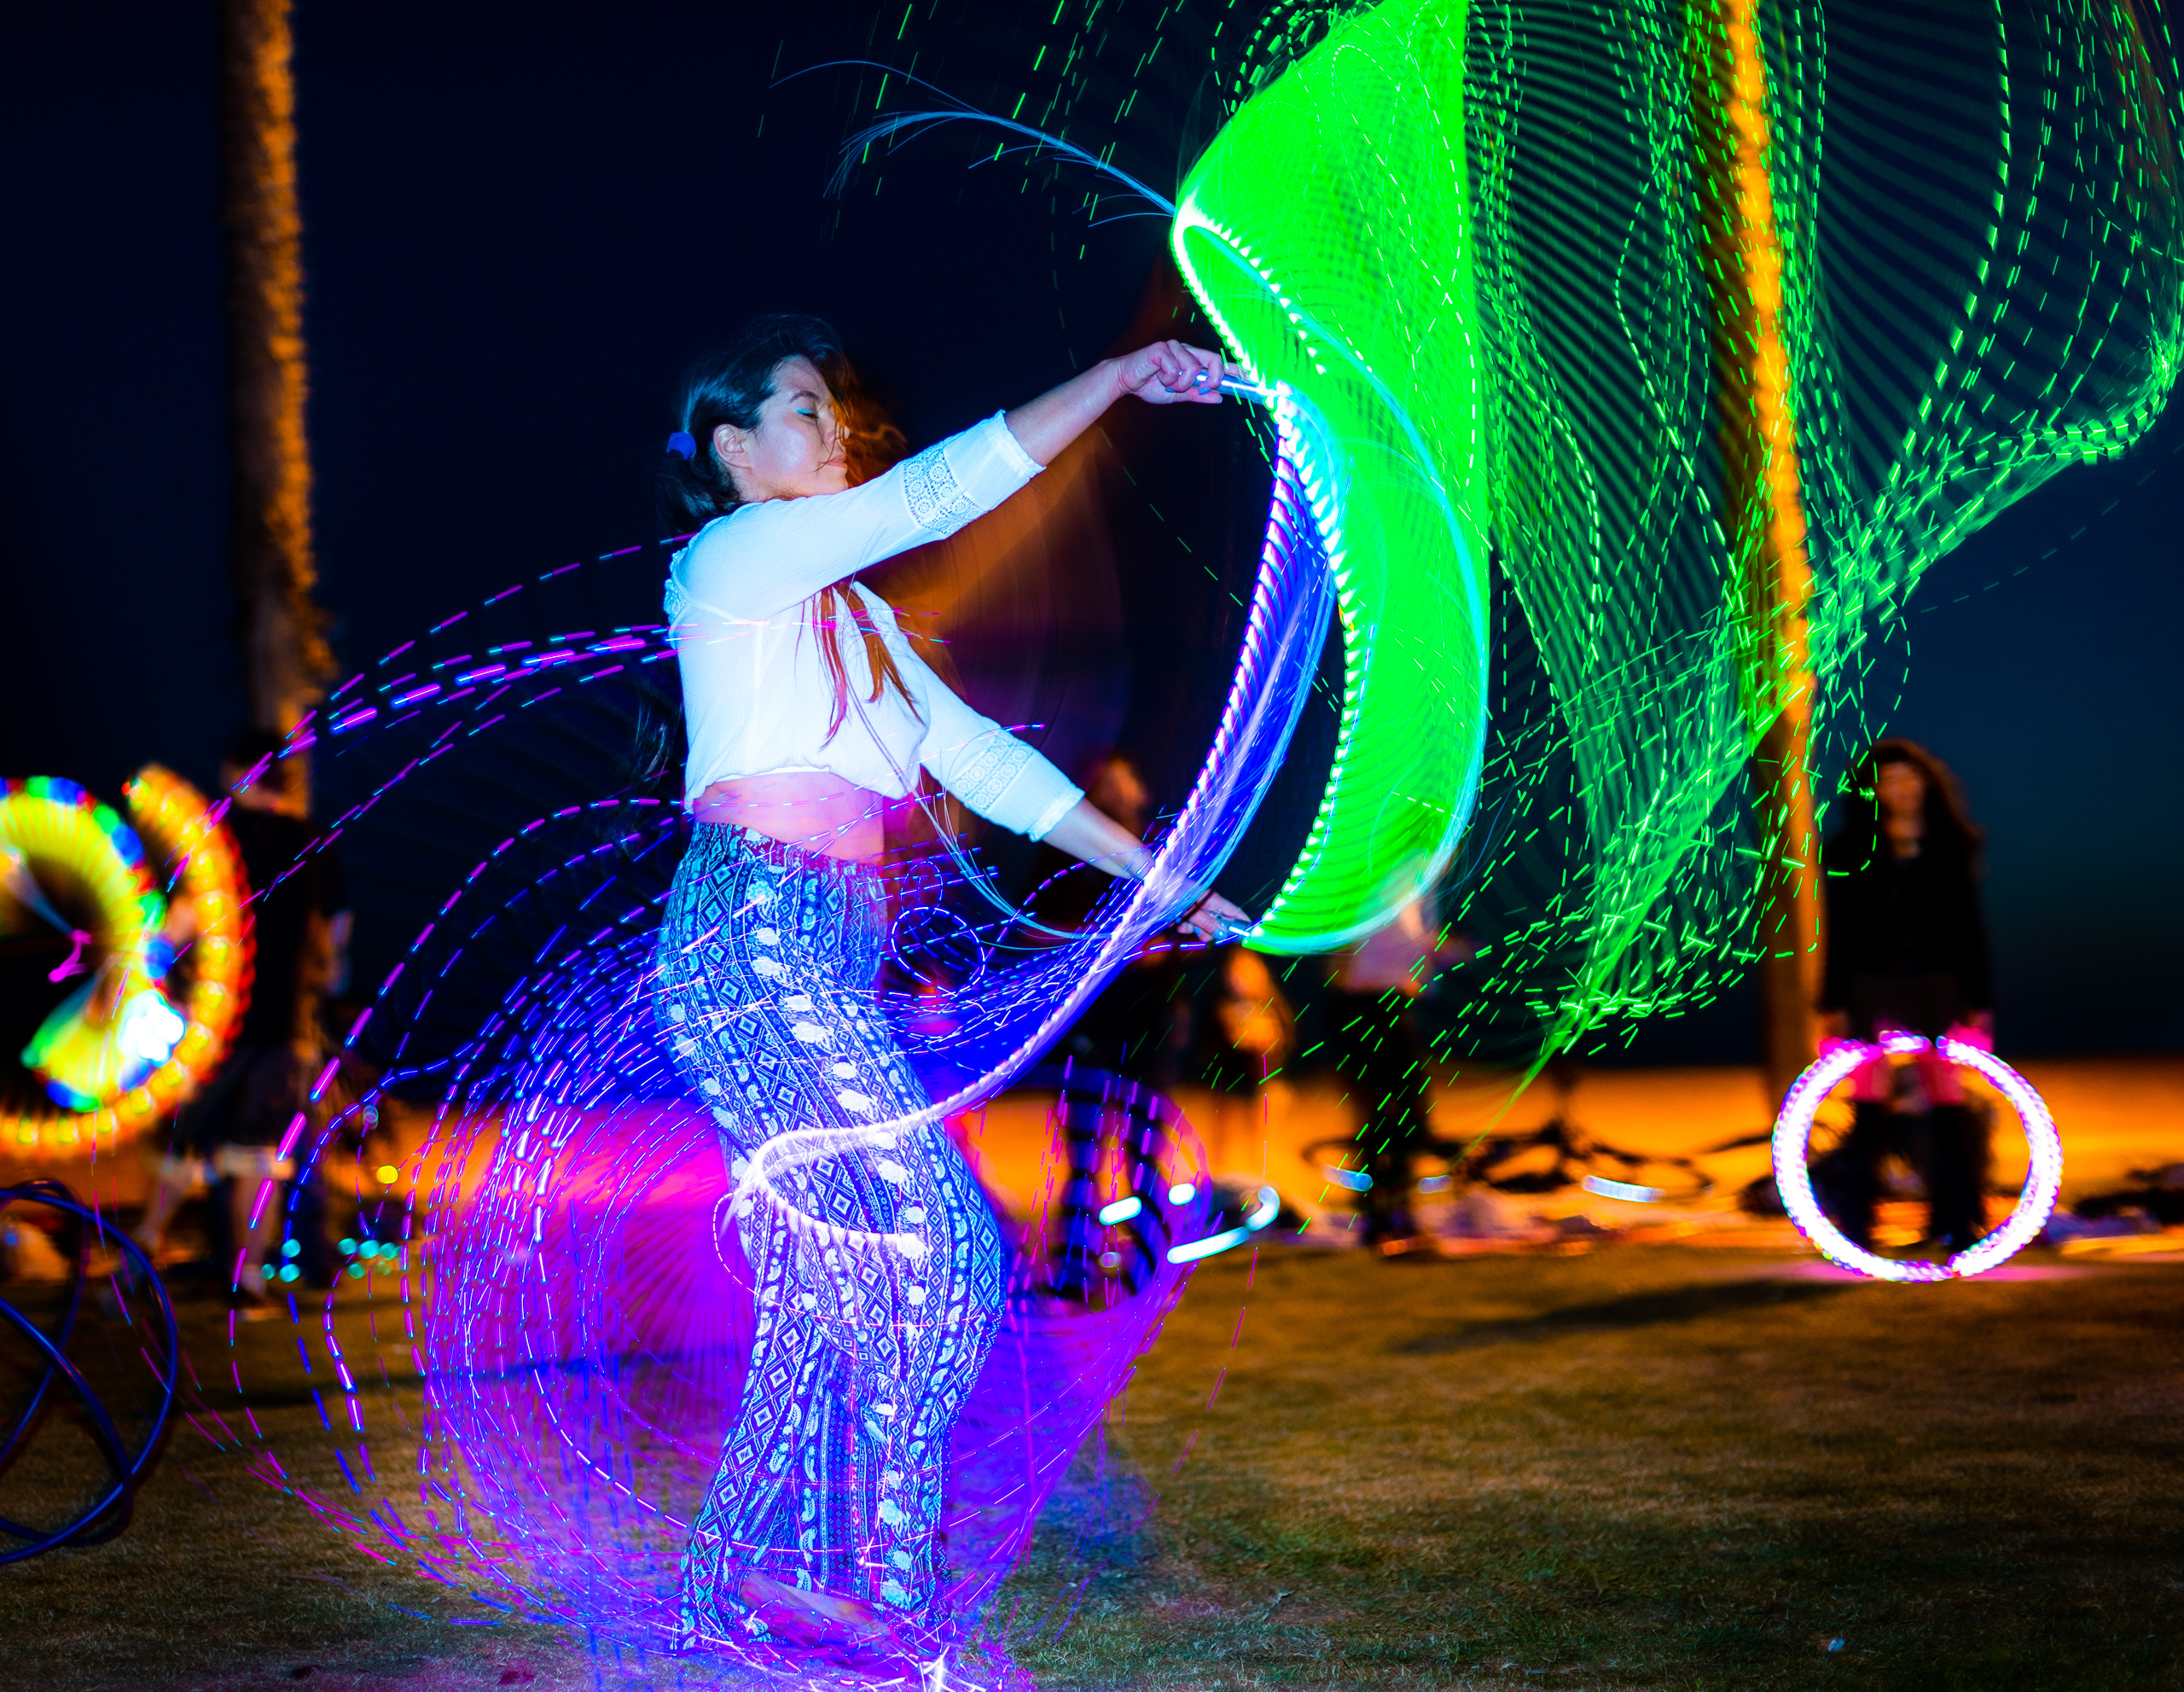 Bianca California performing with LED hula hoops and LED Pixel Whips at Venice Glow Flow at Venice Beach, CA